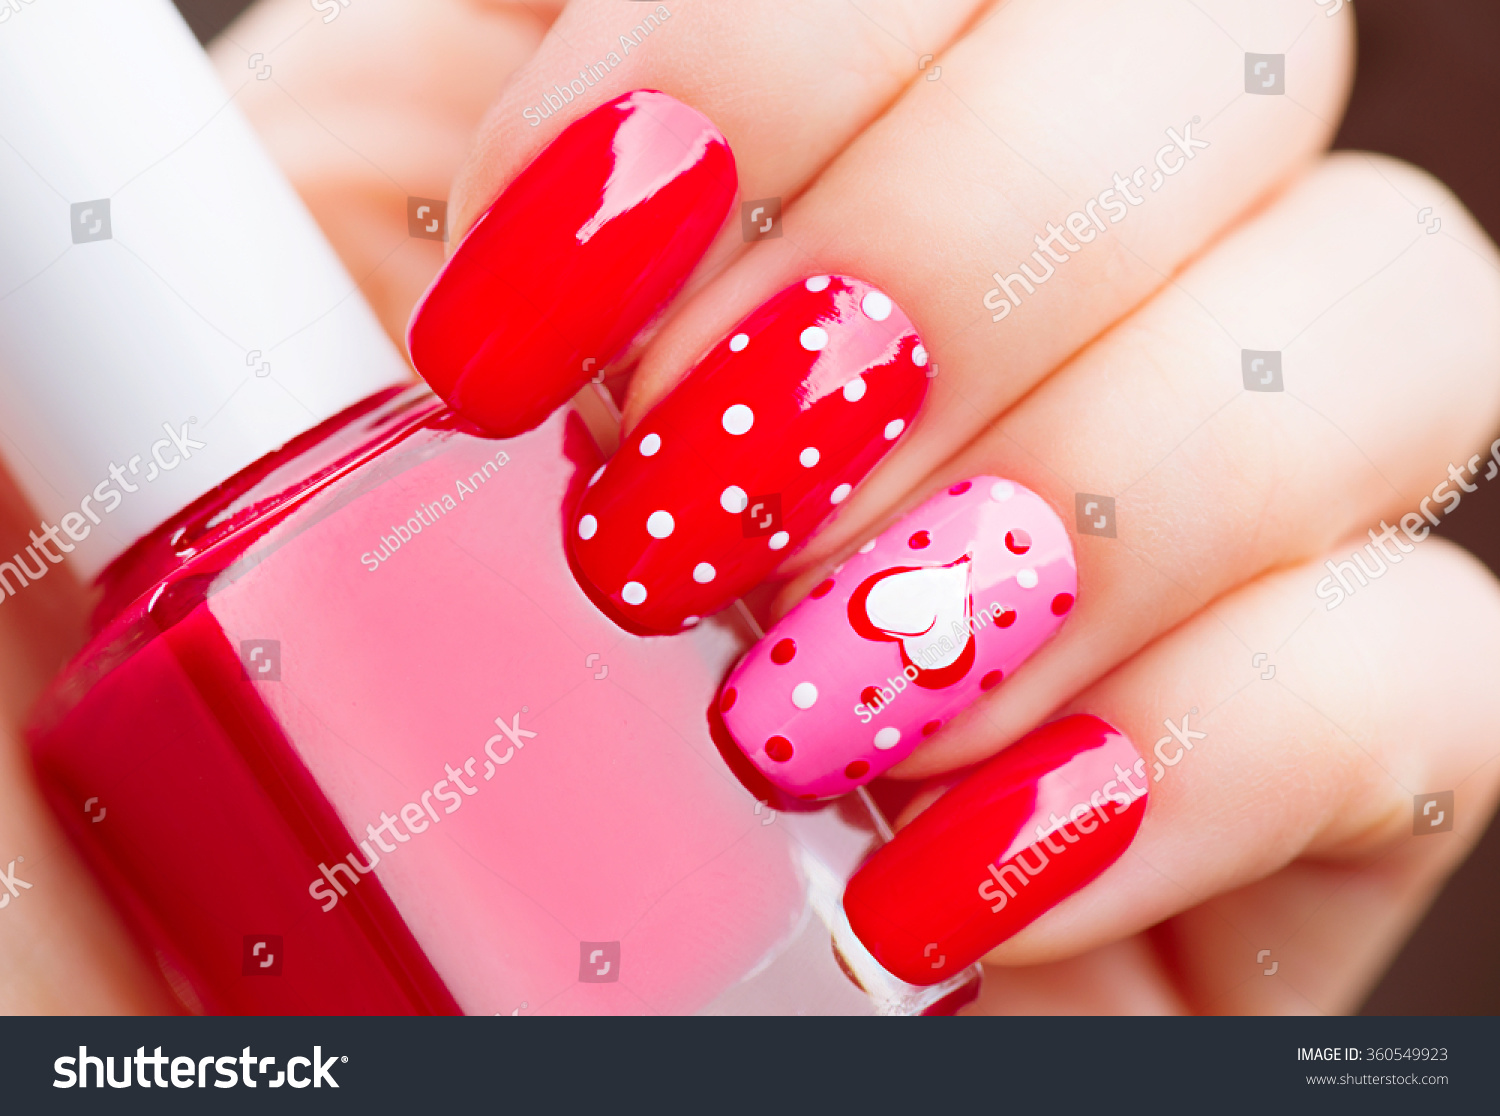 valentine nail art manicure valentines day stock photo. Black Bedroom Furniture Sets. Home Design Ideas